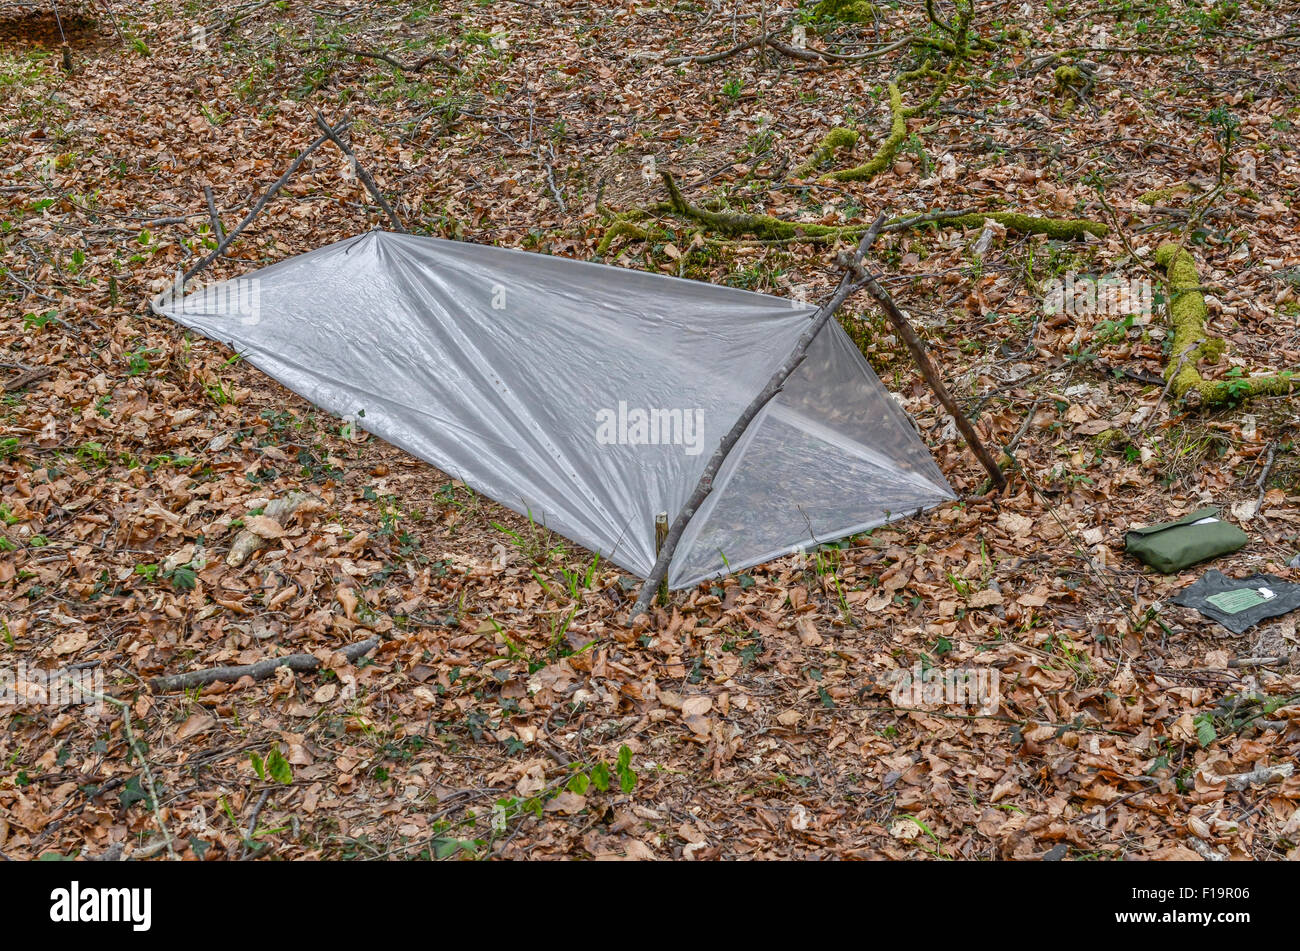 Survival Concept Emergency Survival Shelter Constructed From A